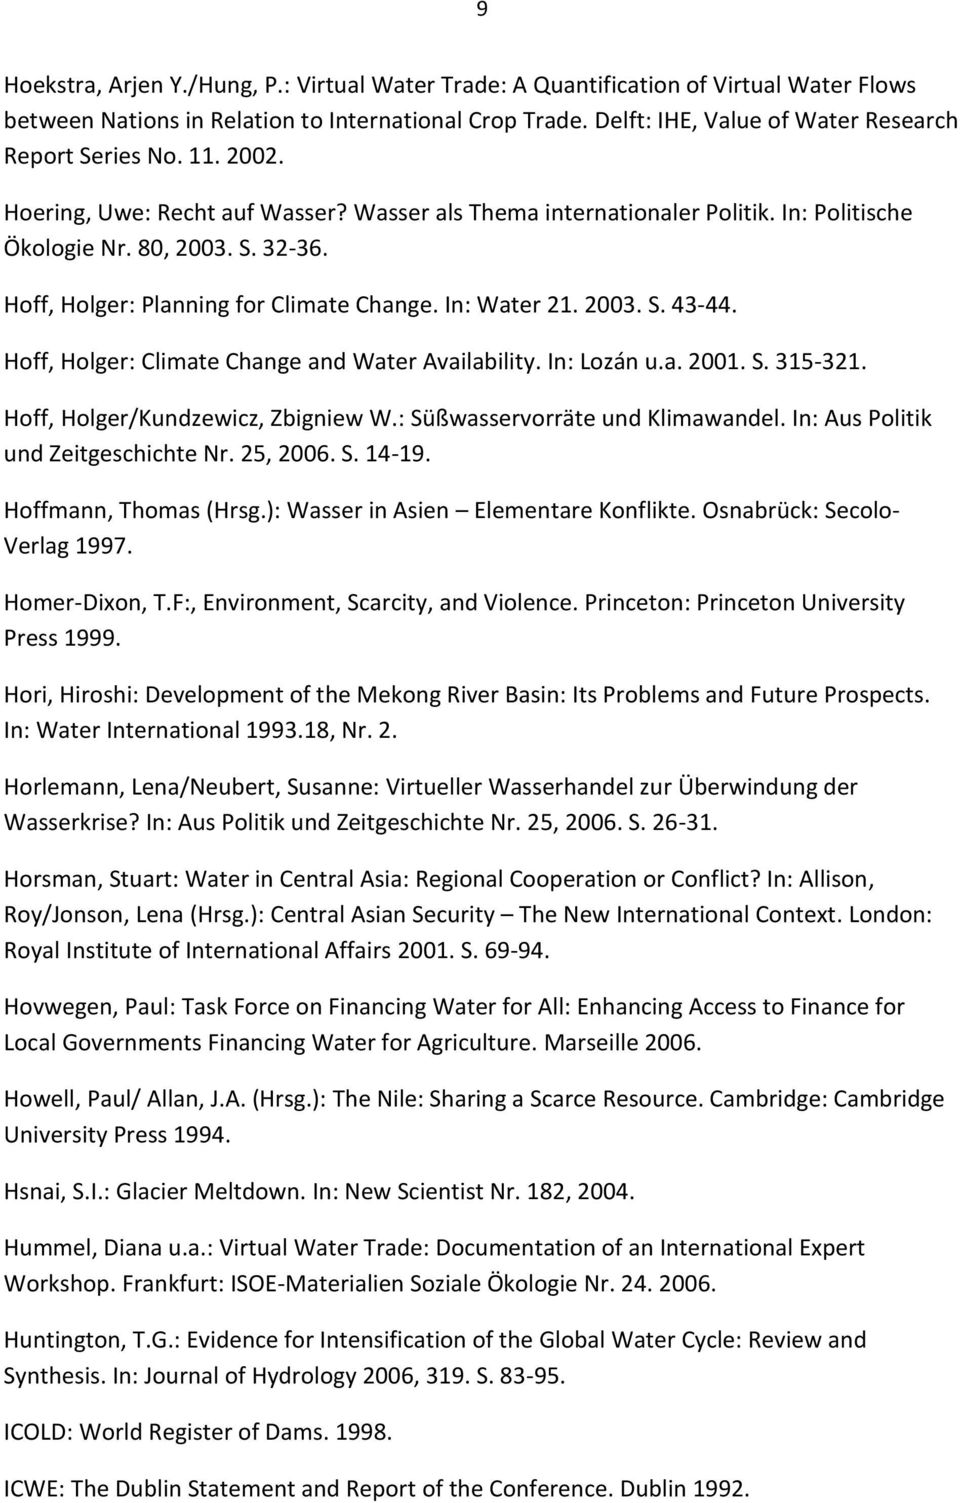 Hoff, Holger: Planning for Climate Change. In: Water 21. 2003. S. 43-44. Hoff, Holger: Climate Change and Water Availability. In: Lozán u.a. 2001. S. 315-321. Hoff, Holger/Kundzewicz, Zbigniew W.